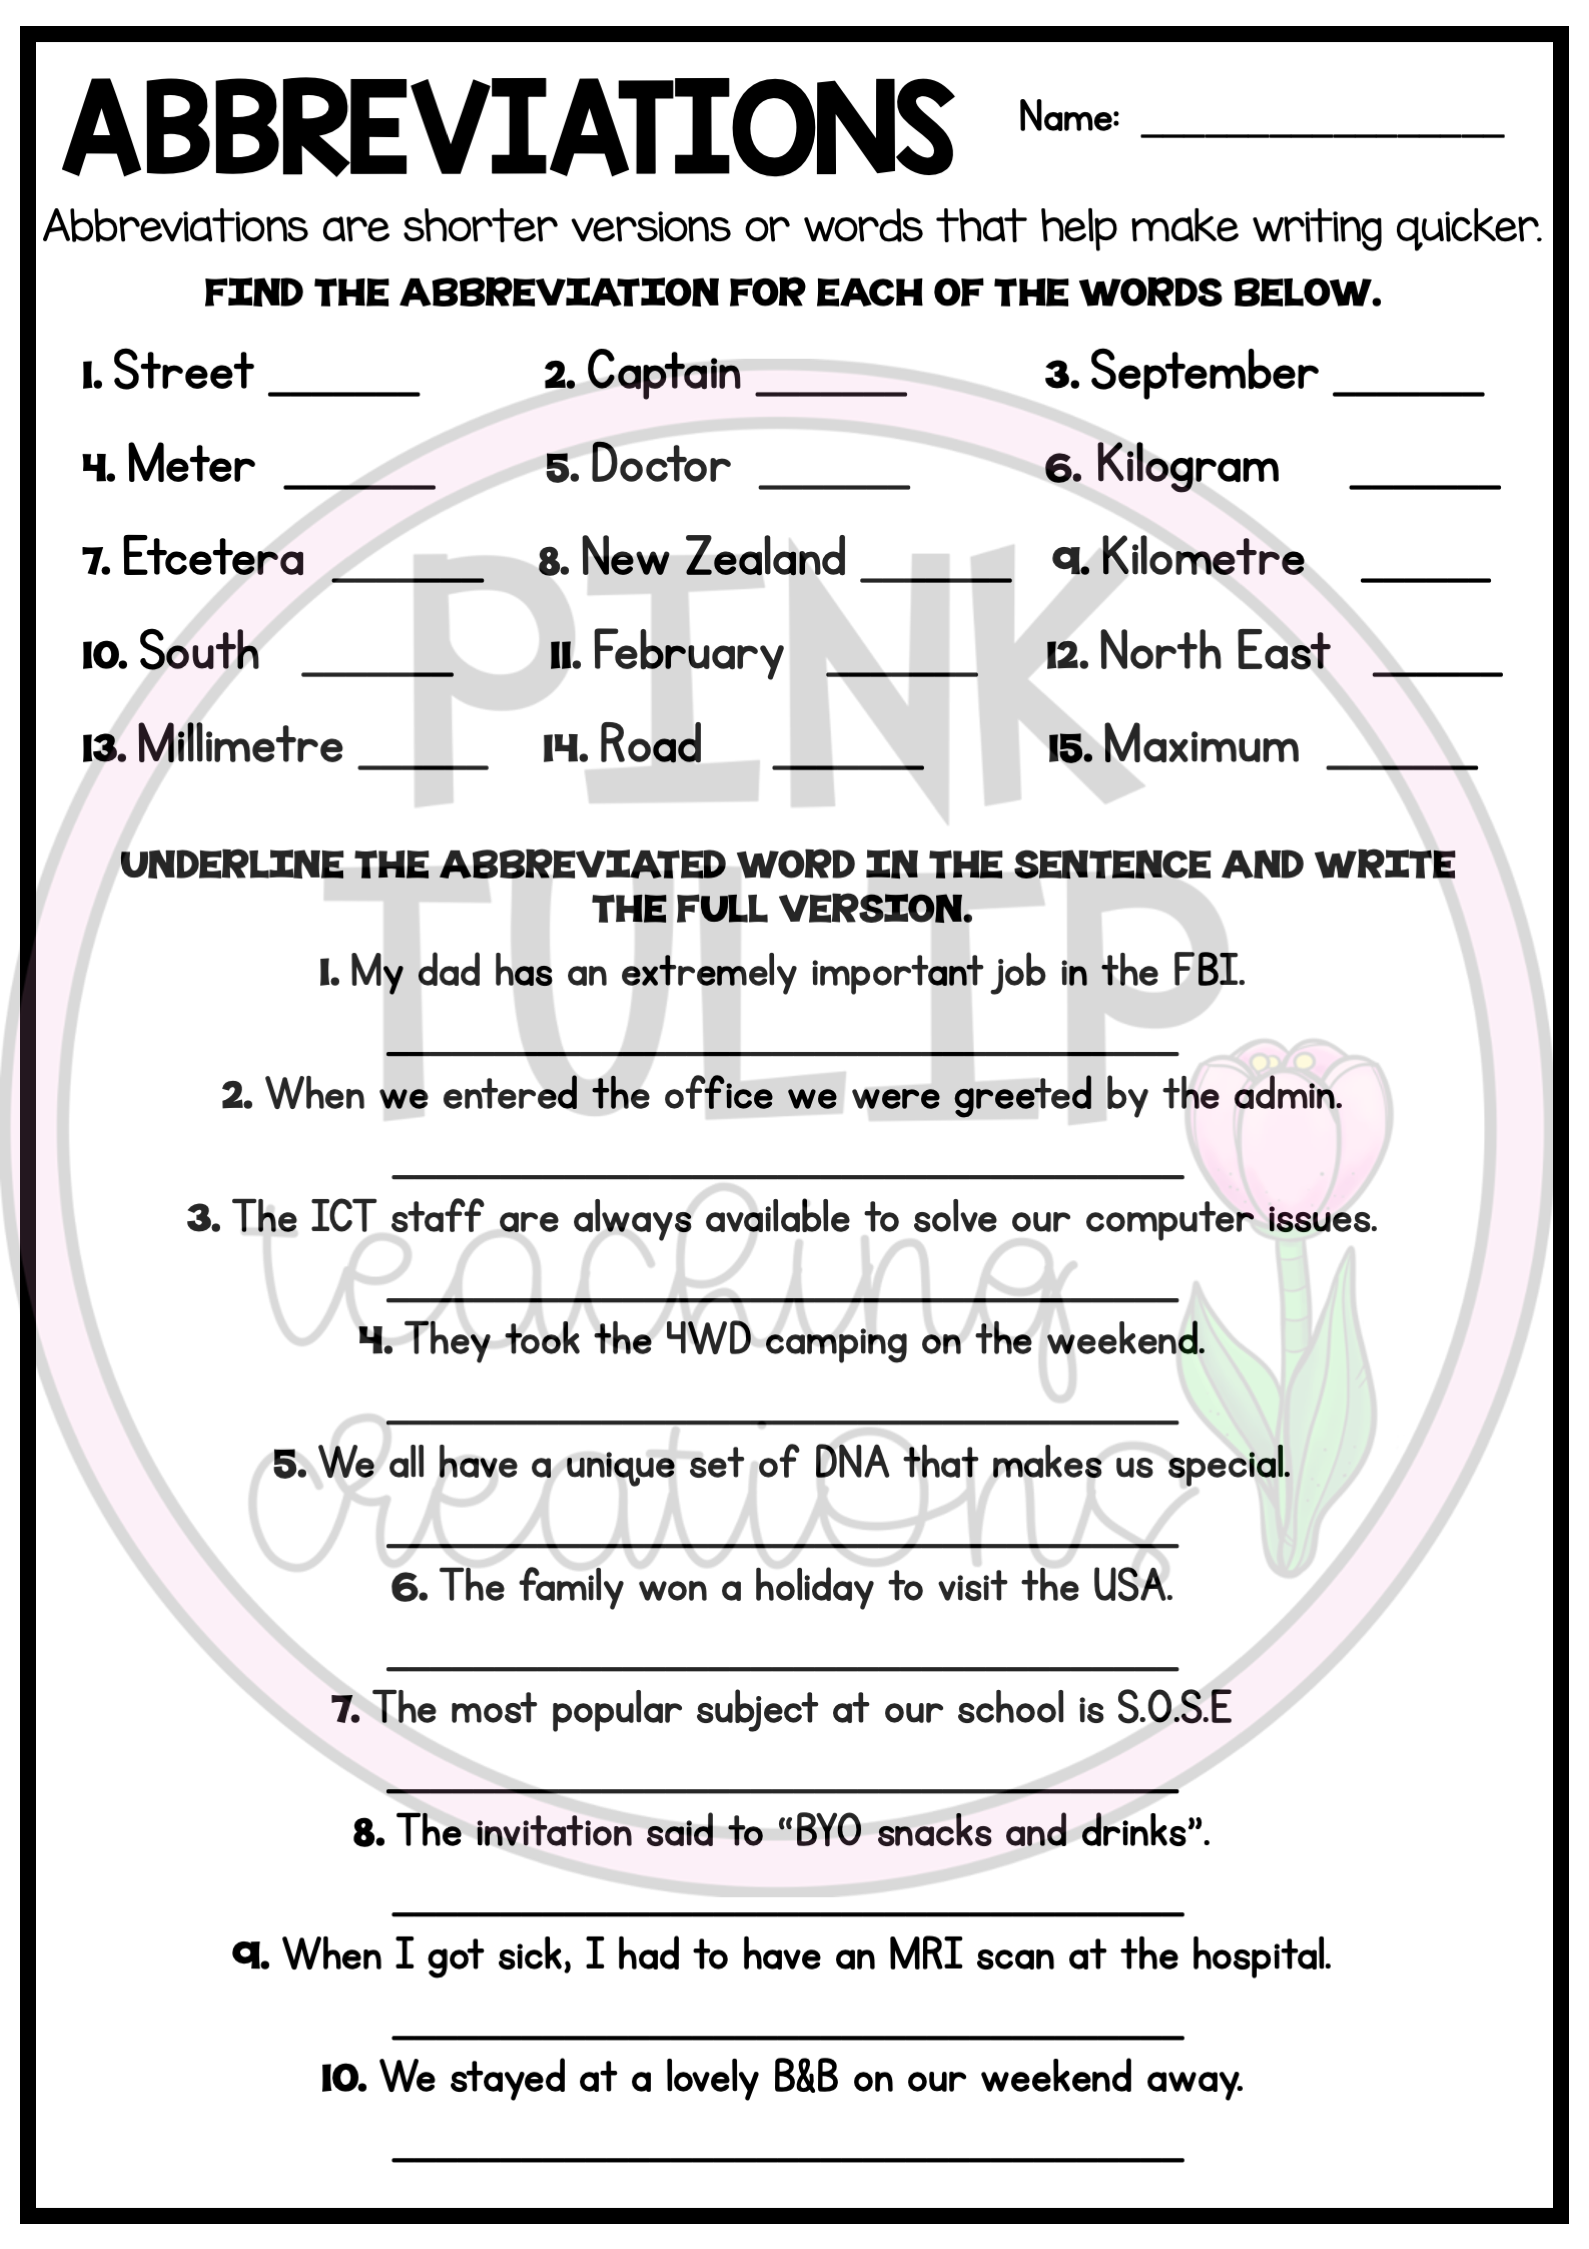 small resolution of Abbreviations Worksheets Printable   Printable Worksheets and Activities  for Teachers